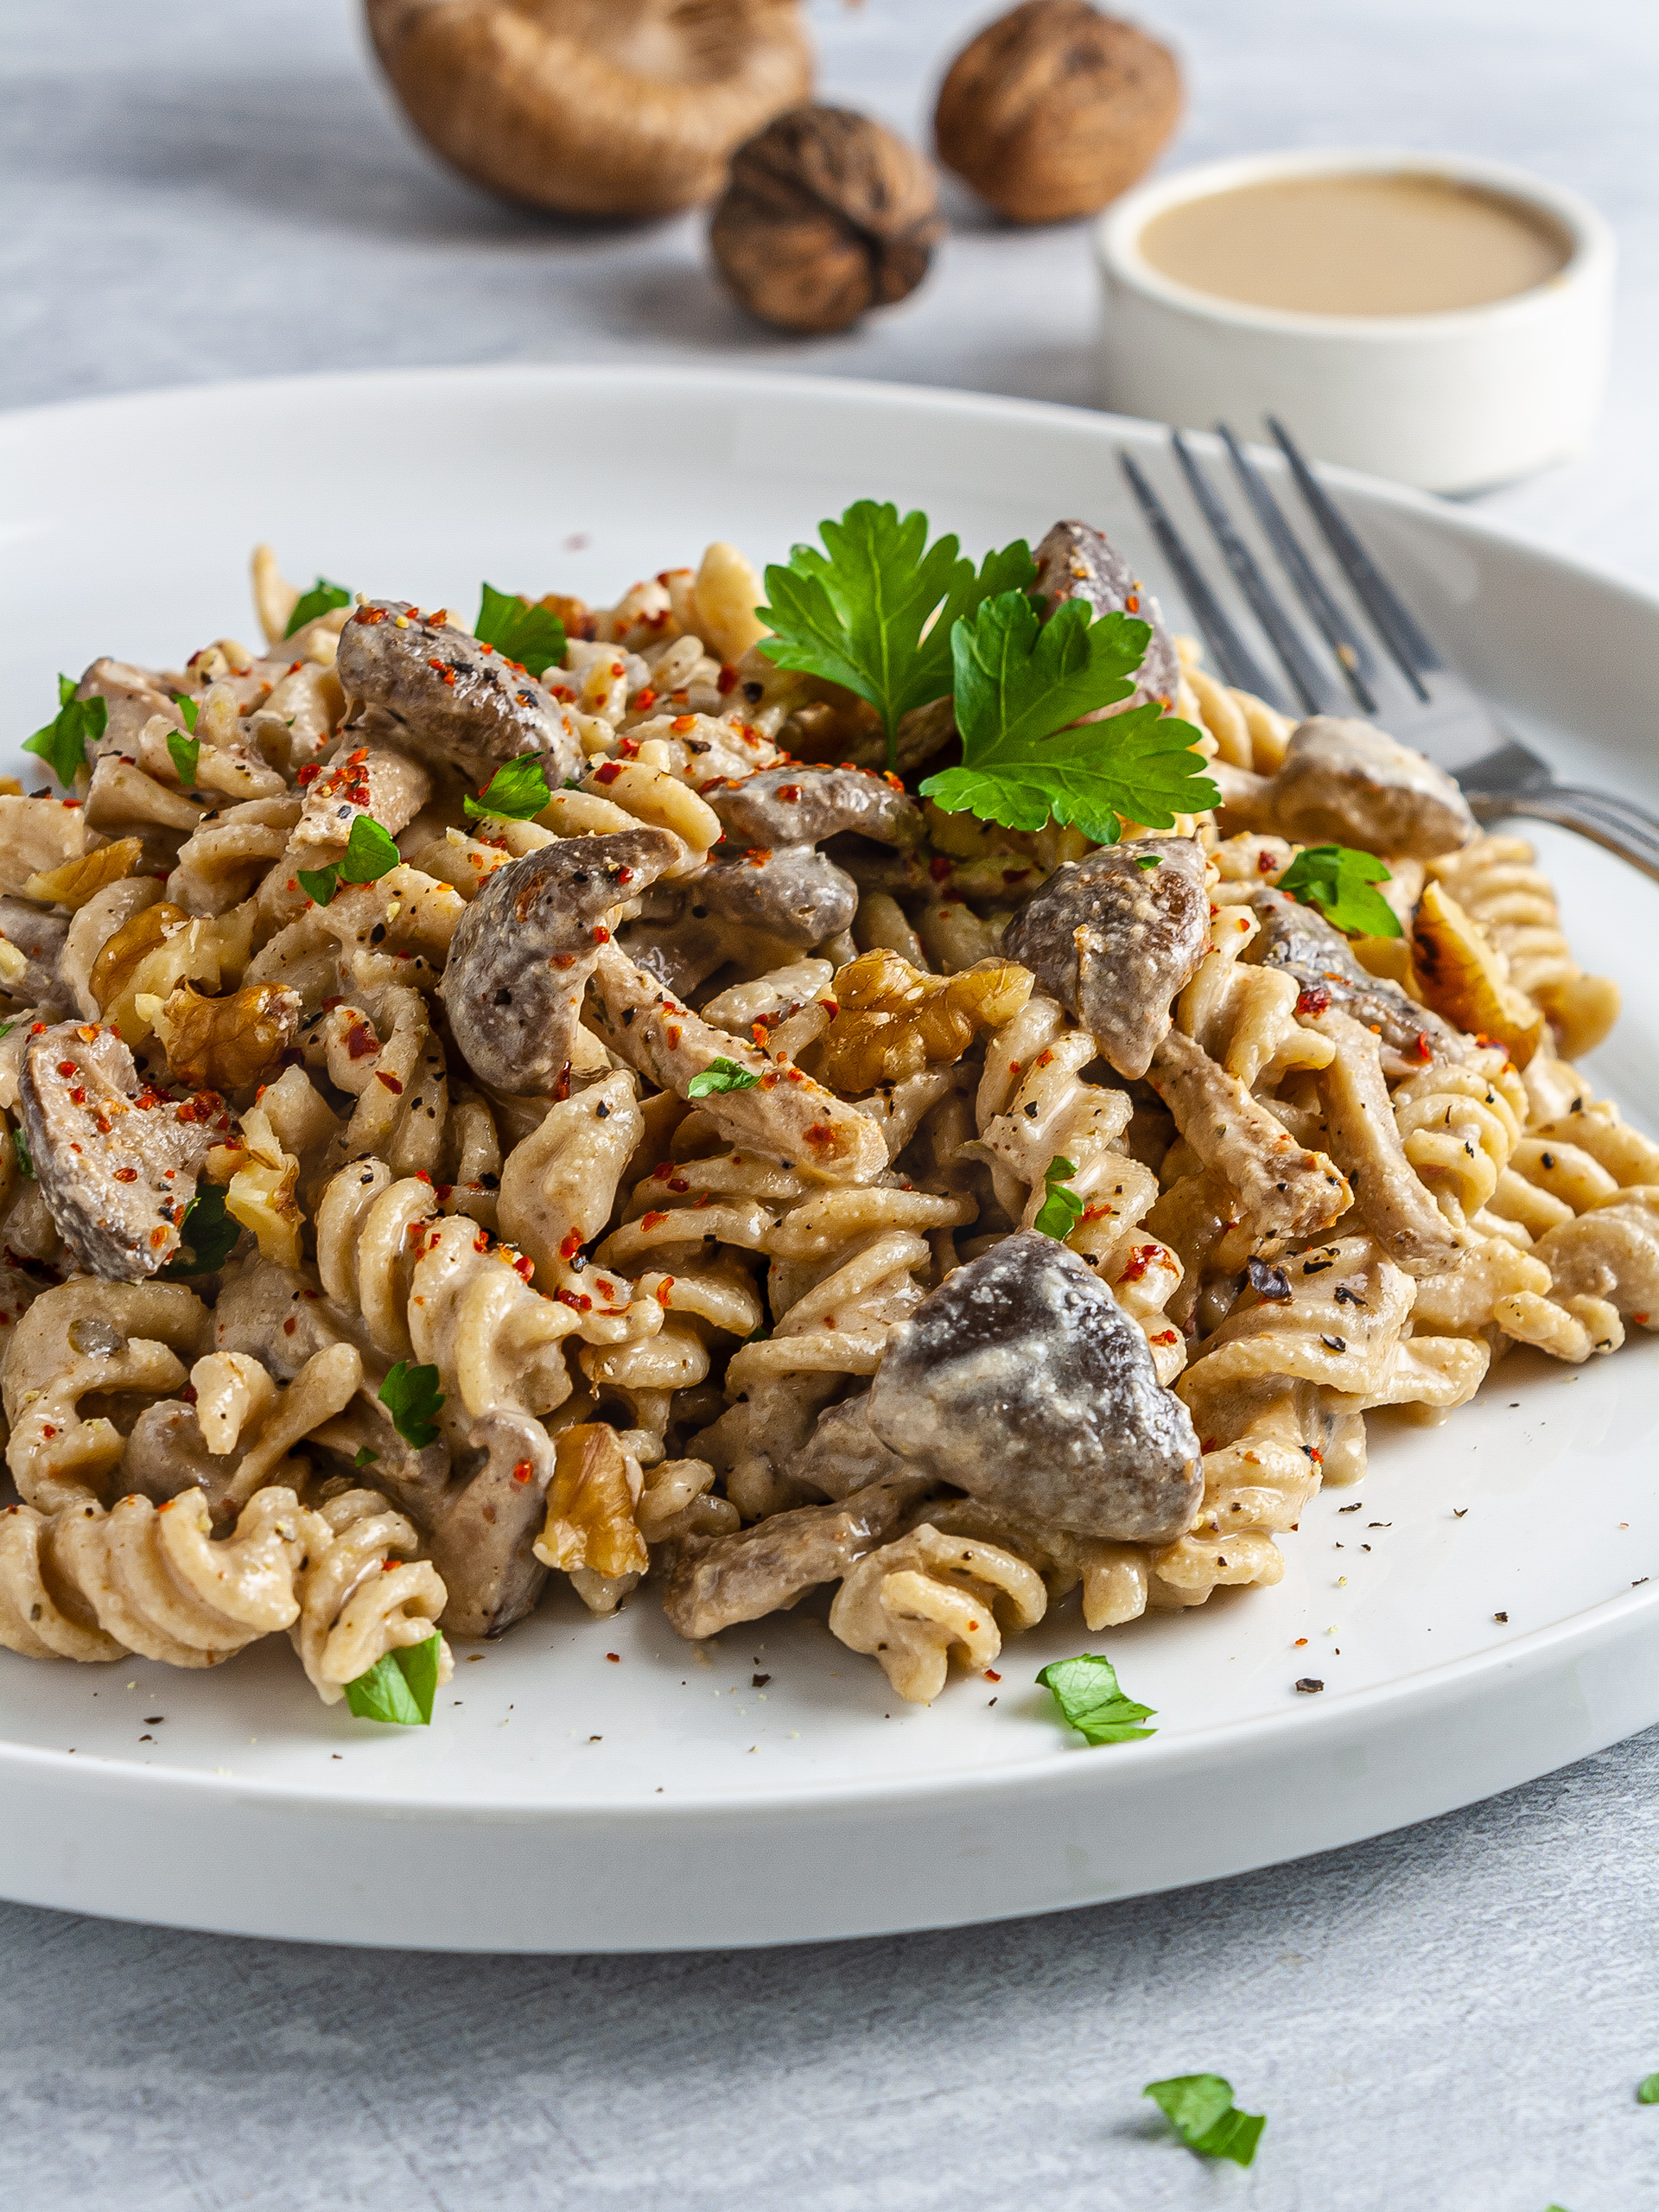 Vegan No Cream Tahini Pasta with Mushrooms Thumbnail